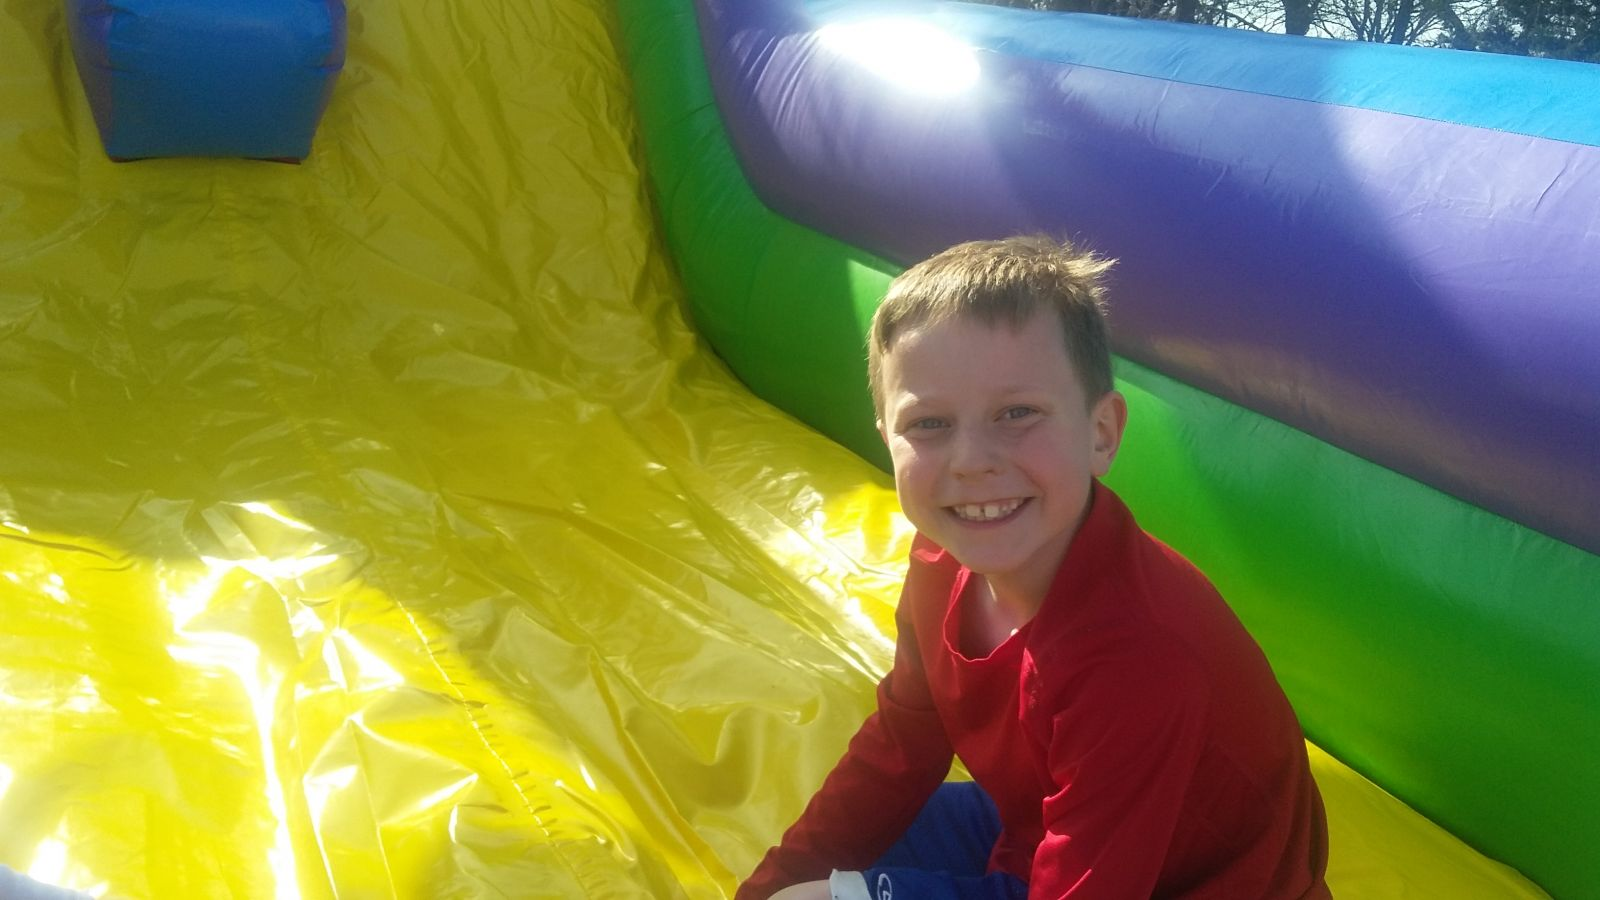 Boy on slide on conquer inflatable obstacle course rental from Froggy Hops